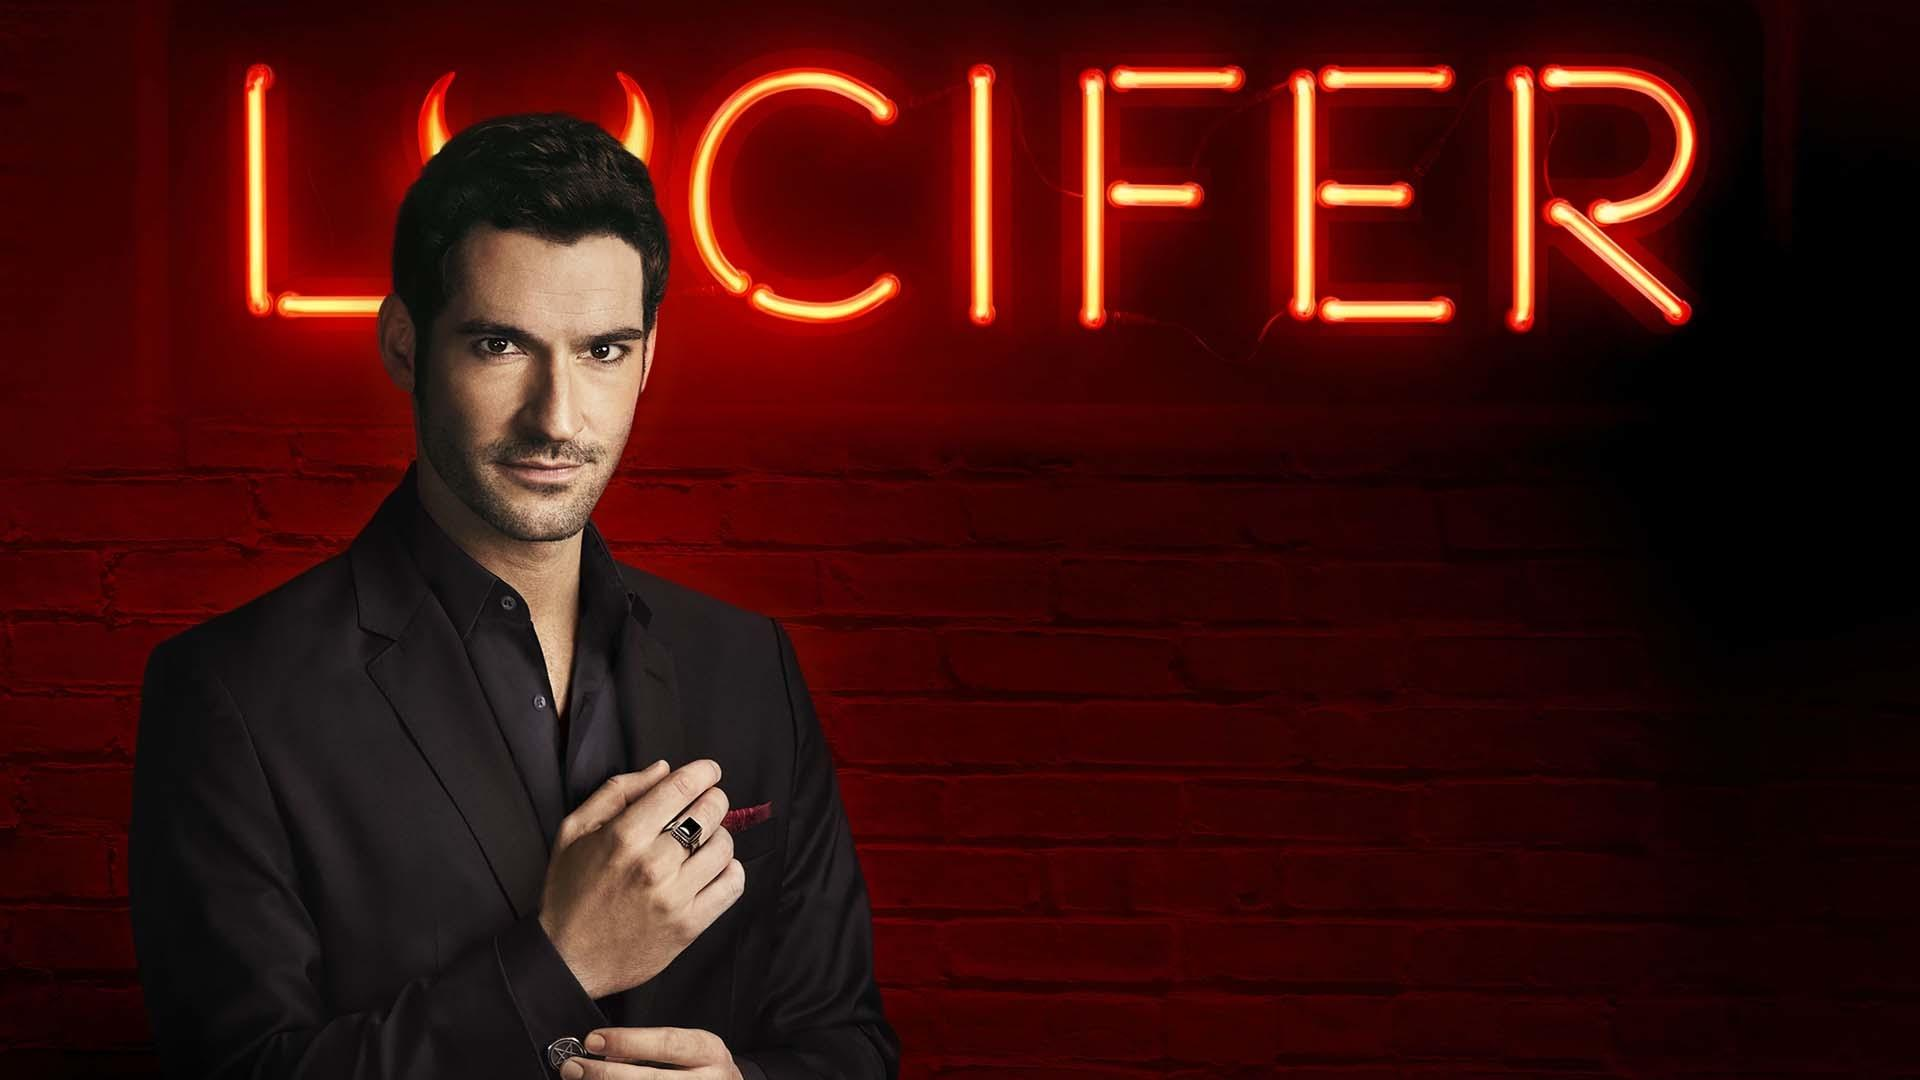 Lucifer wallpapers HD quality